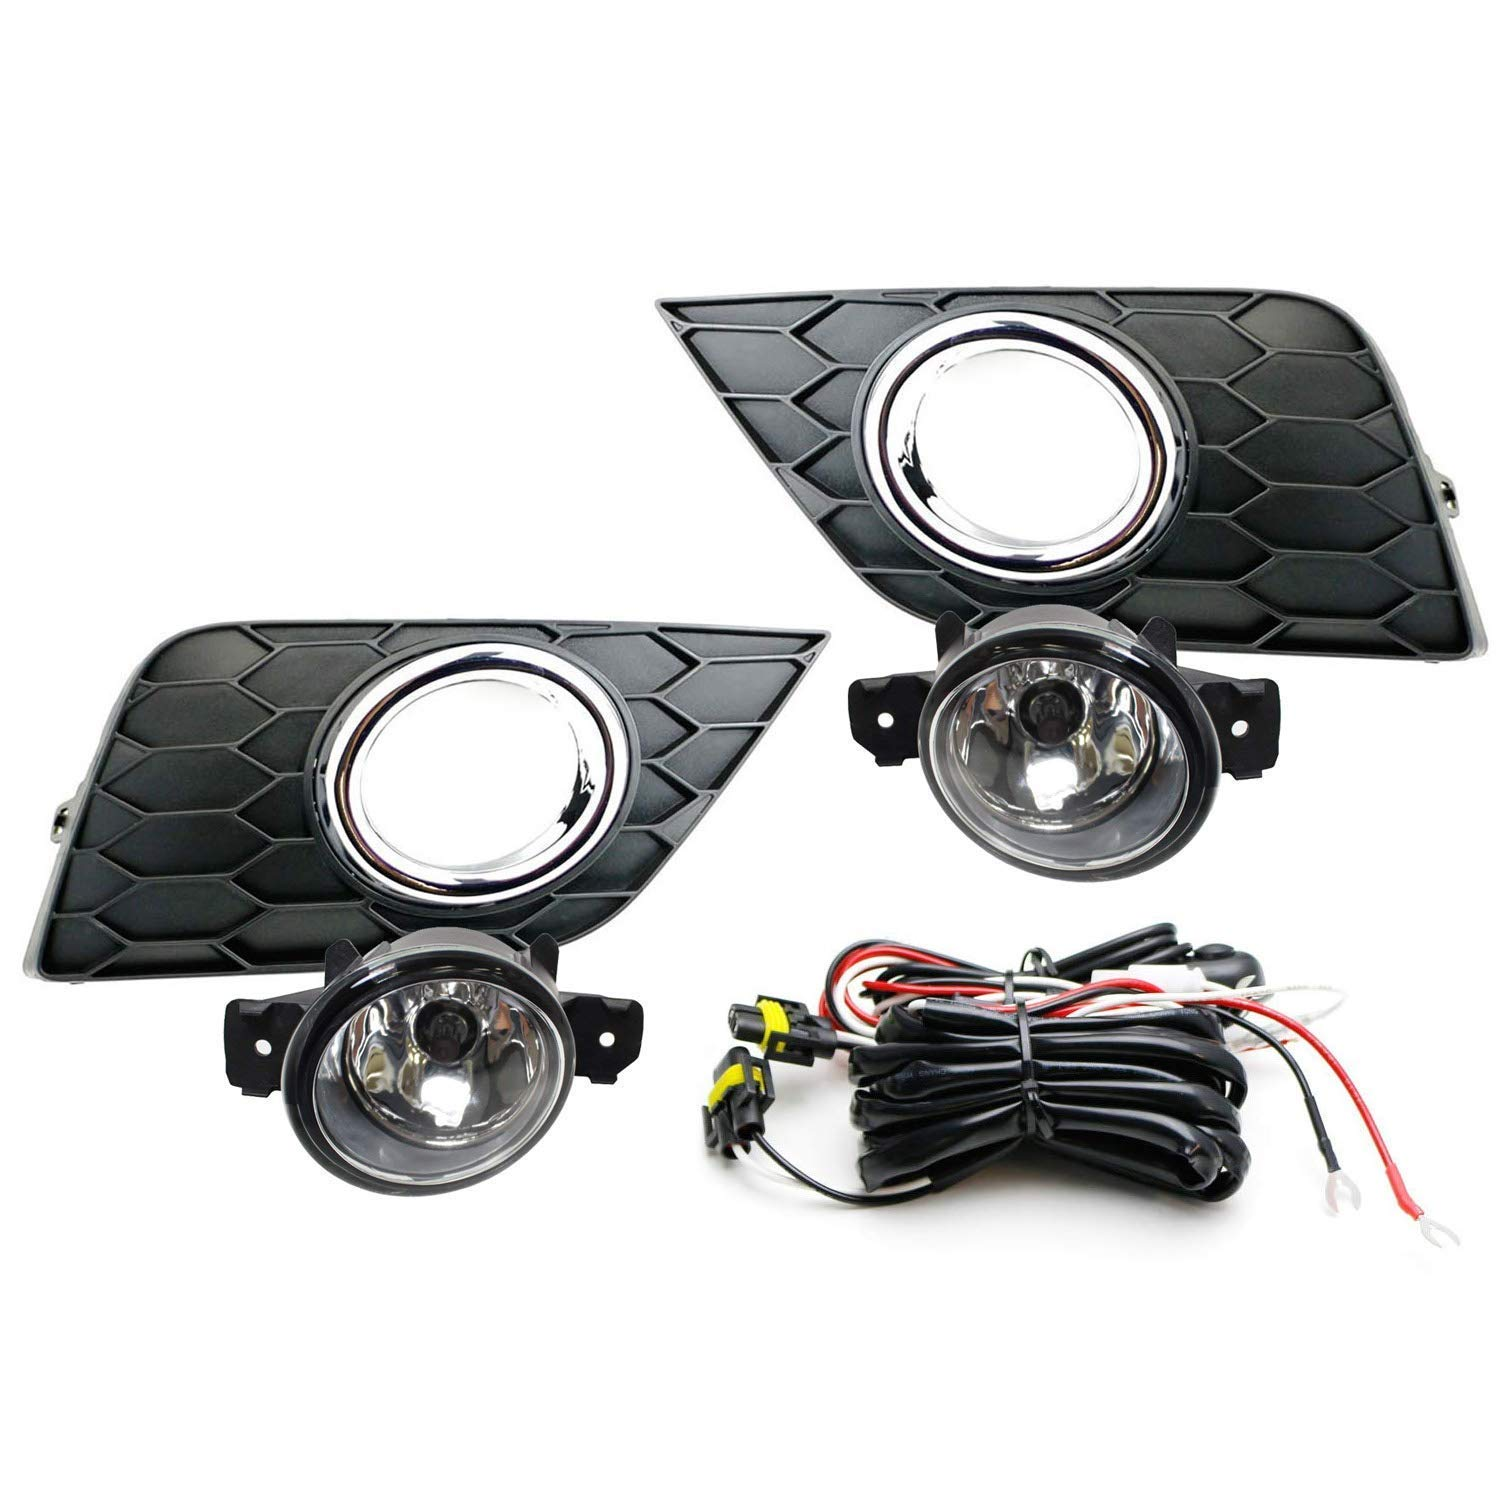 hight resolution of ijdmtoy complete set clear lens fog lights foglamp kit for 2016 up nissan sentra facelift with halogen bulbs wiring on off switch and garnish bezel